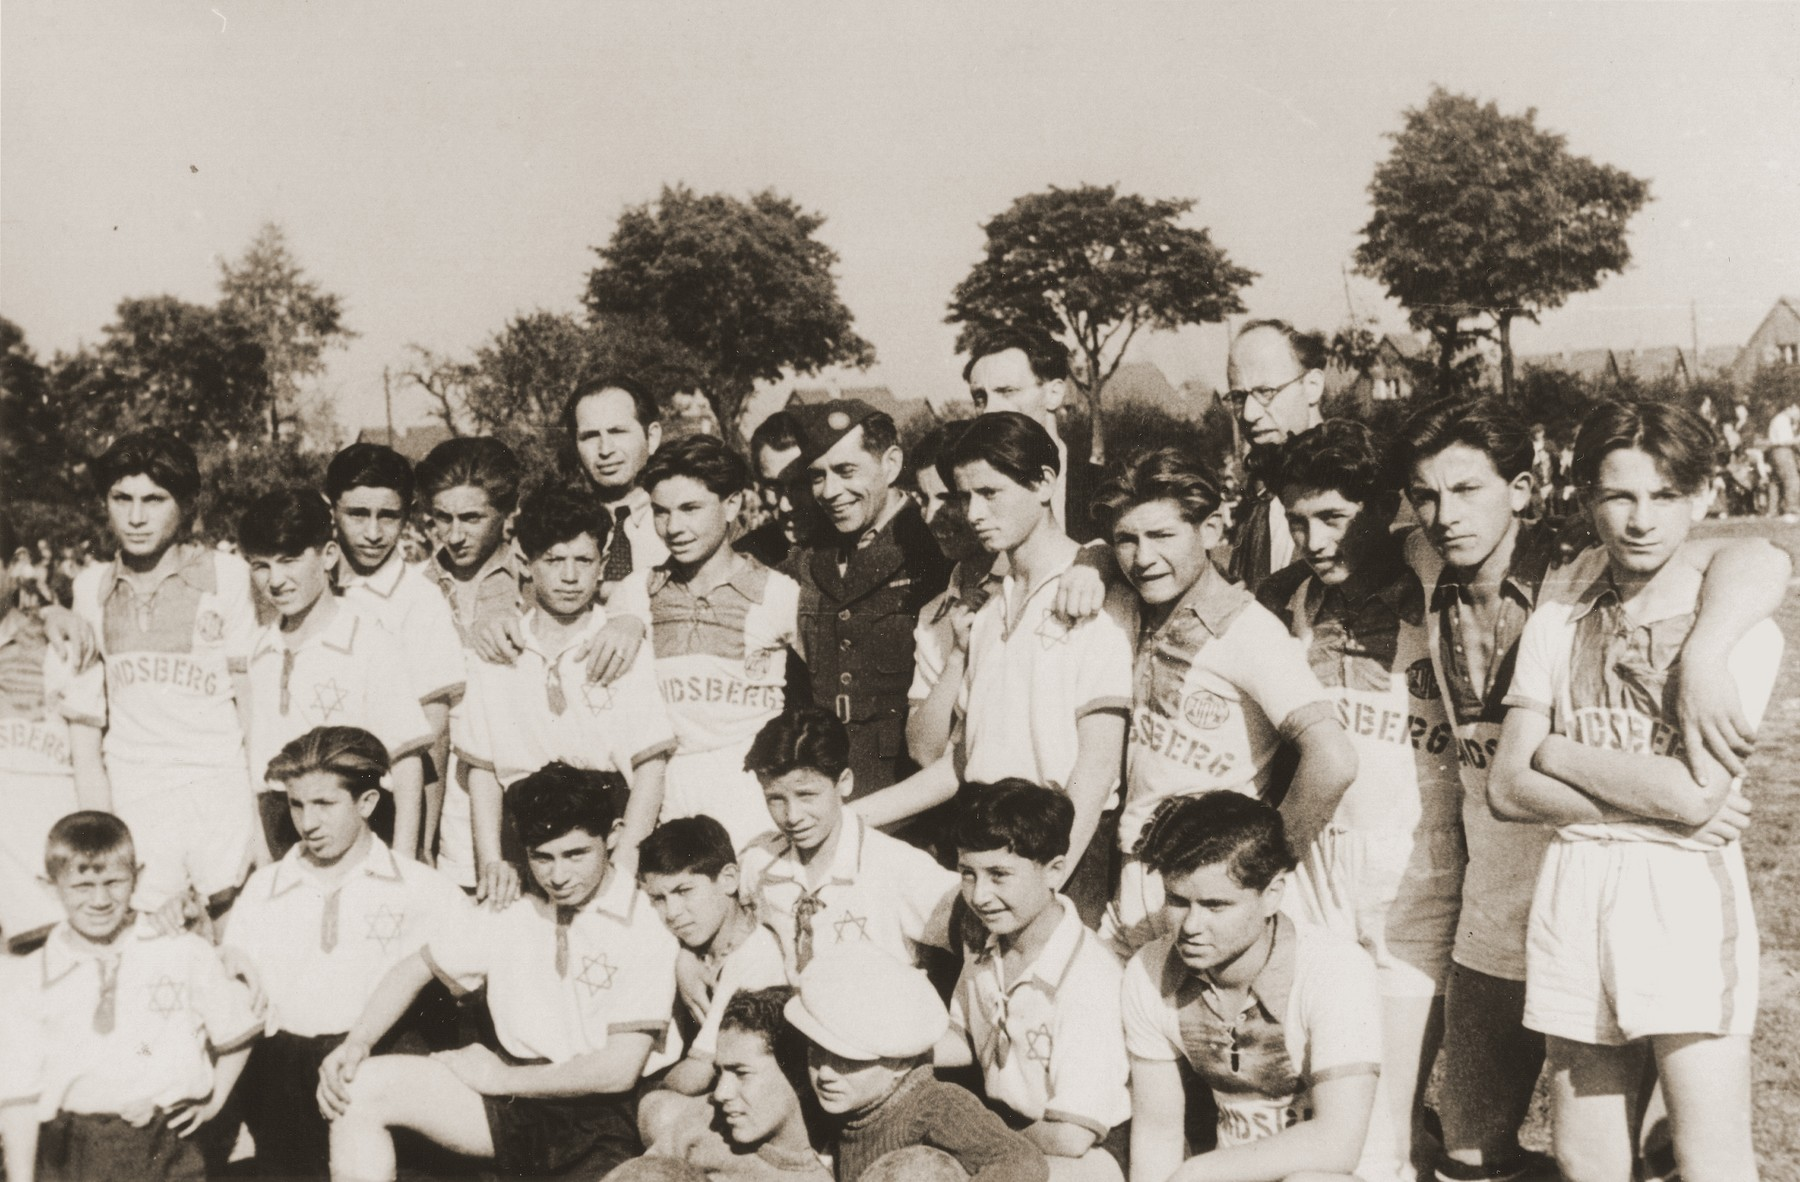 Group portrait of members of the soccer team in the Neu Freimann displaced persons camp.